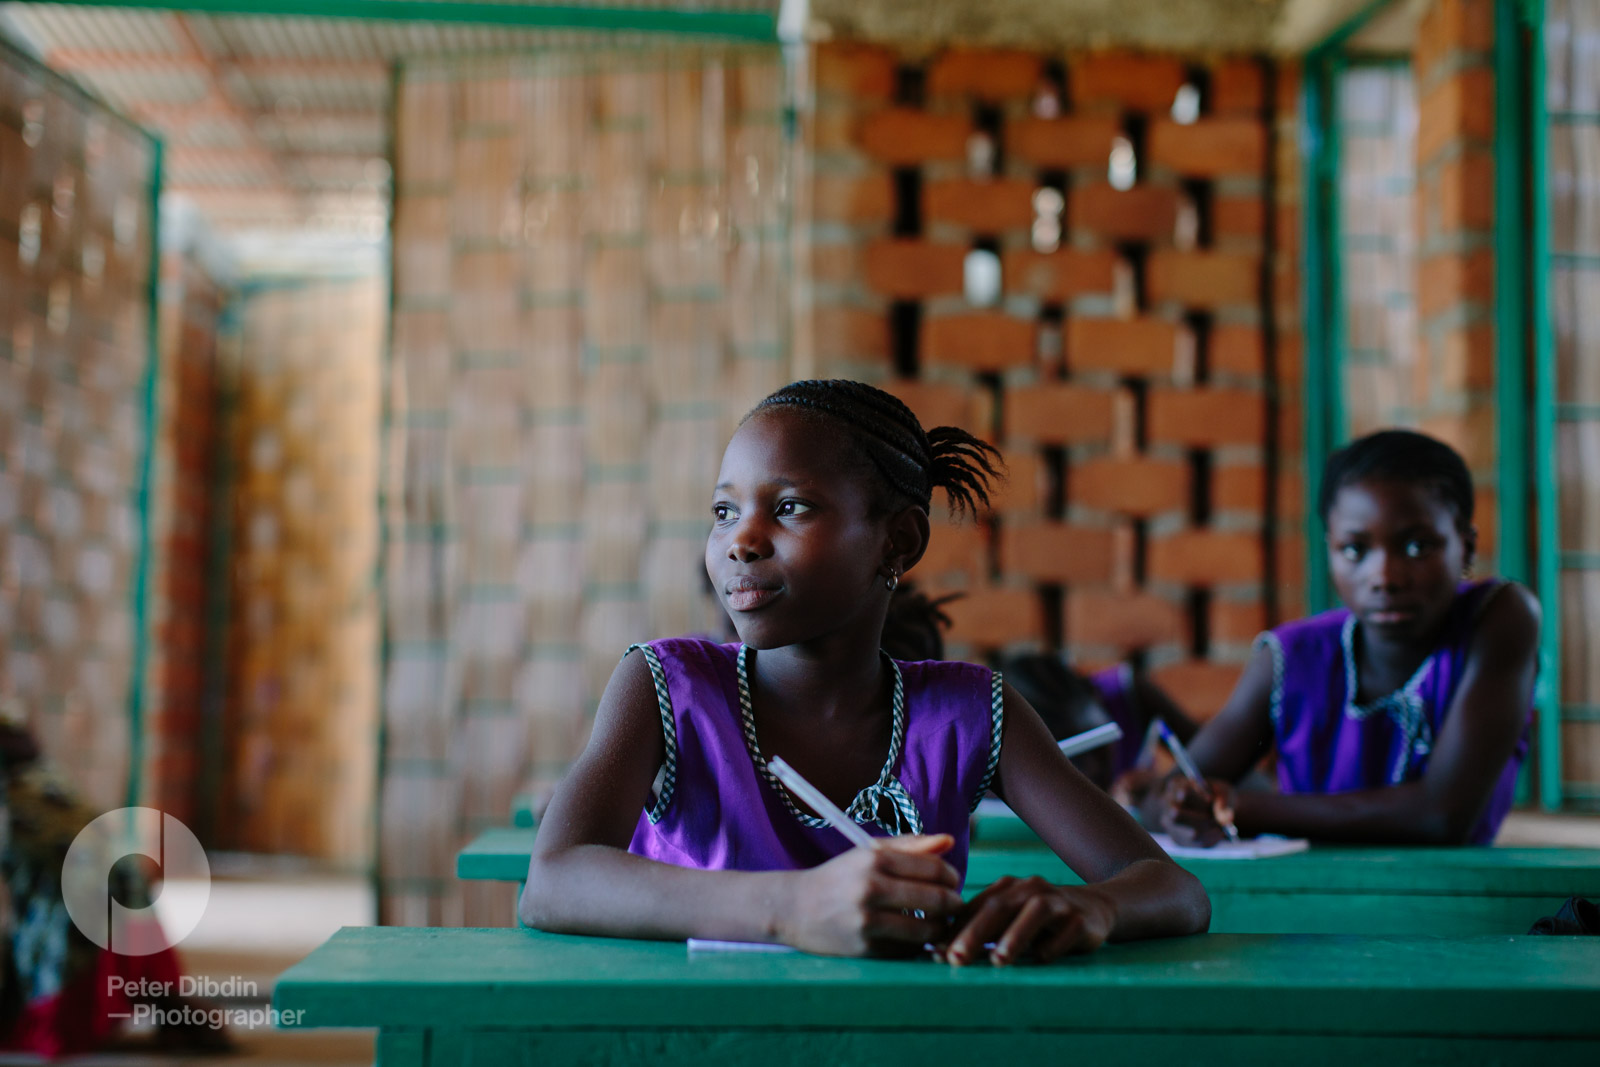 Studying at Swawou School, Sierra Leone.